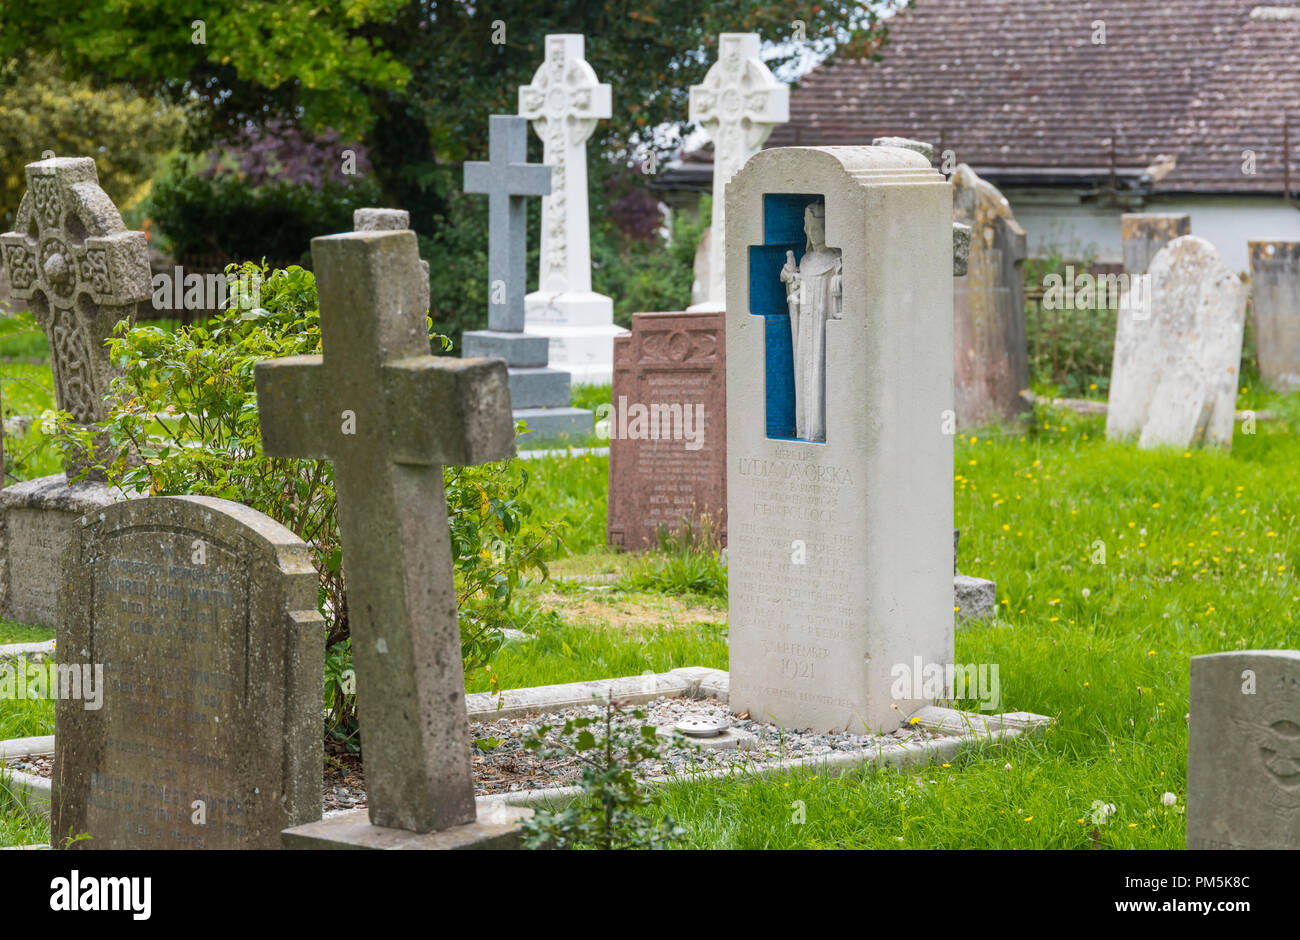 Tombstone at the grave of Russian Princess Bariatinsky, Lydia Yavorska, buried at St Nicolas Church churchyard in Old Shoreham, West Sussex, UK. - Stock Image